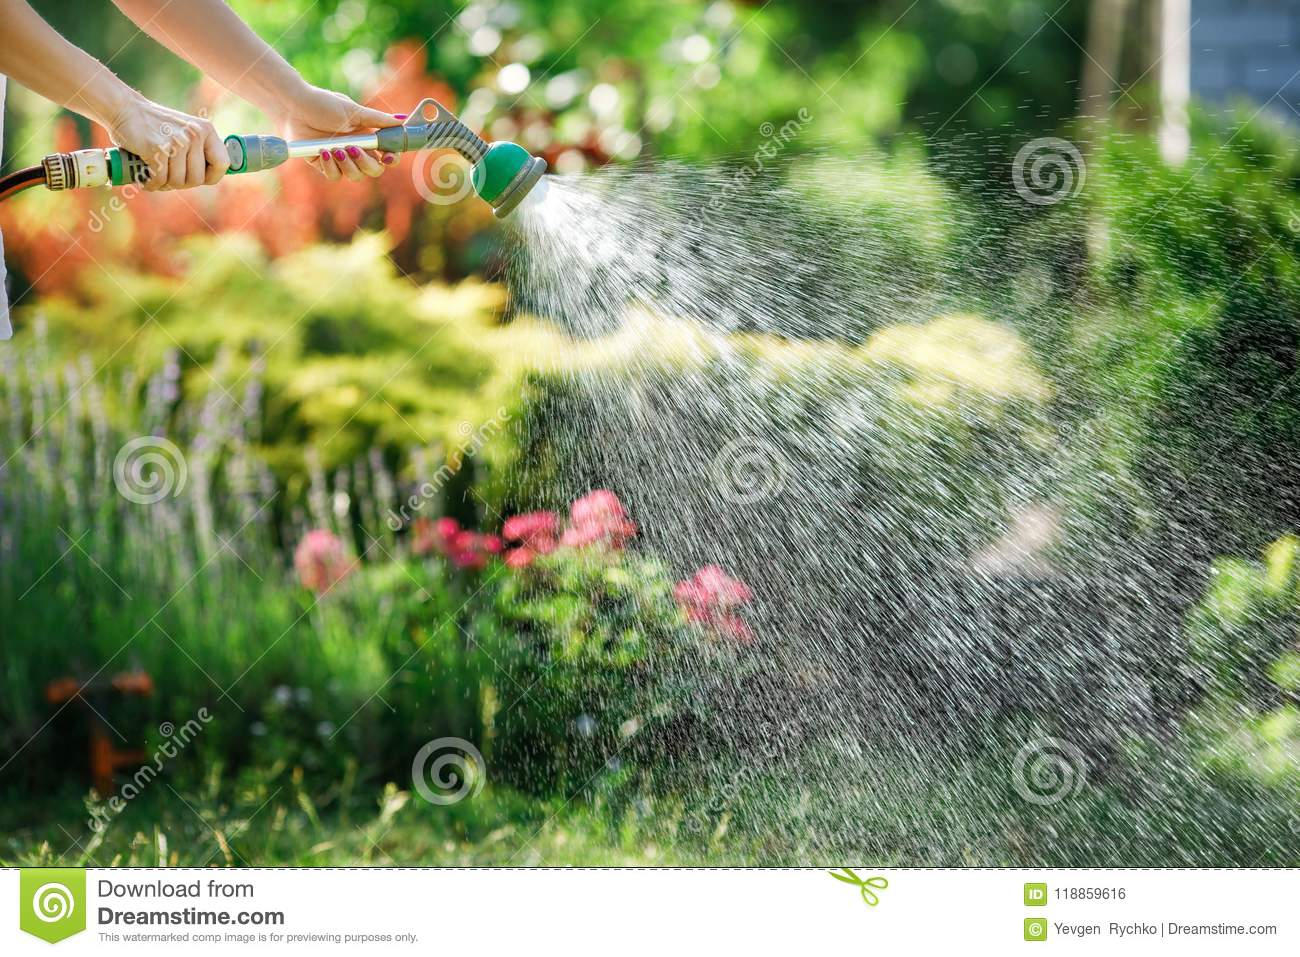 Watering garden flowers with hose